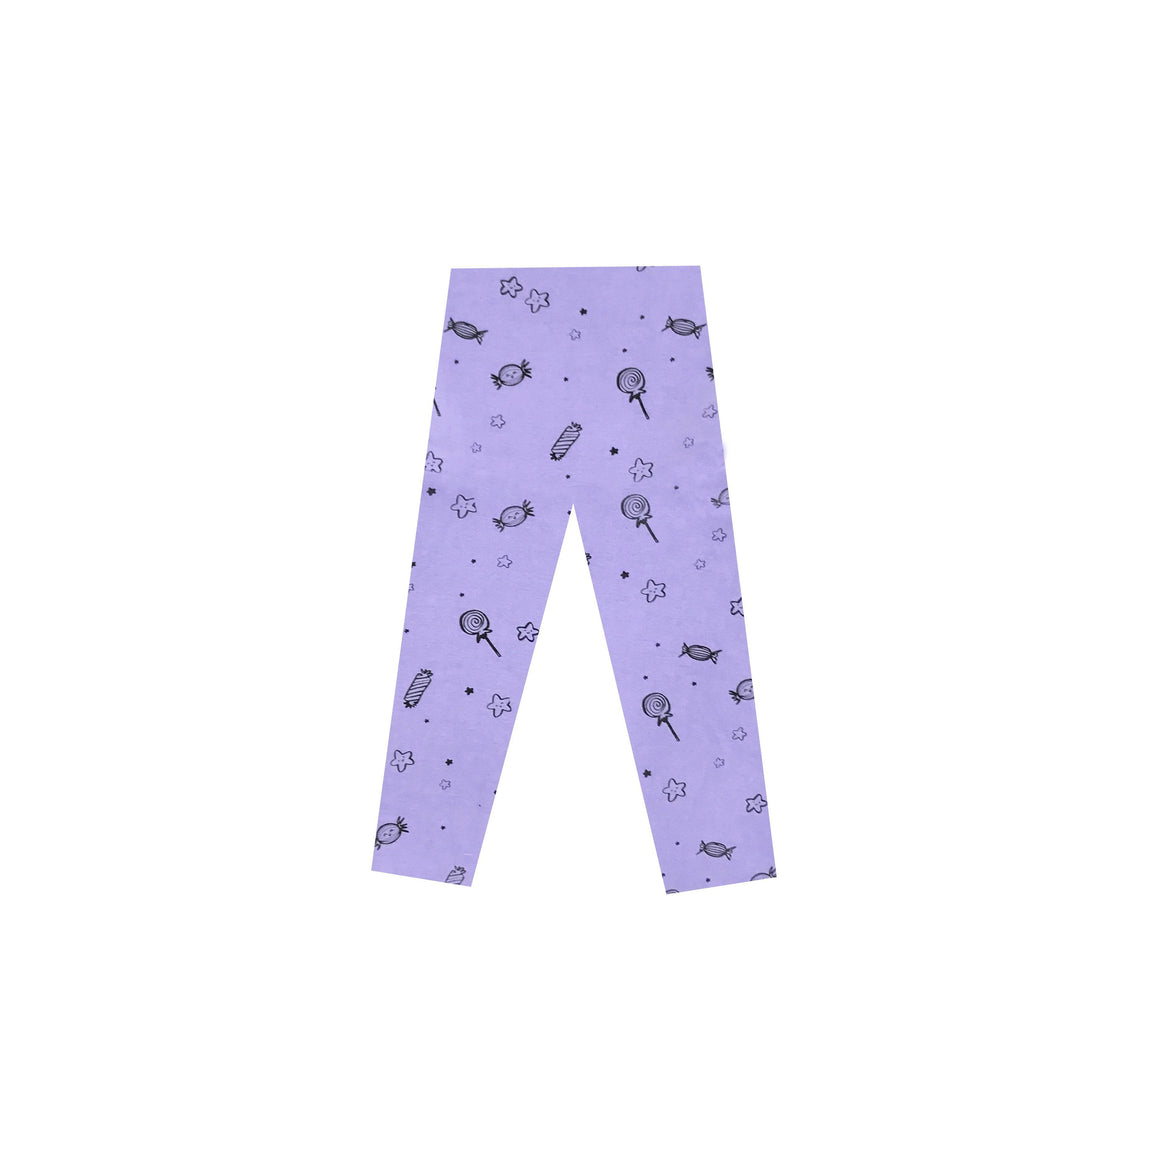 Sweets Print Leggings, Periwinkle